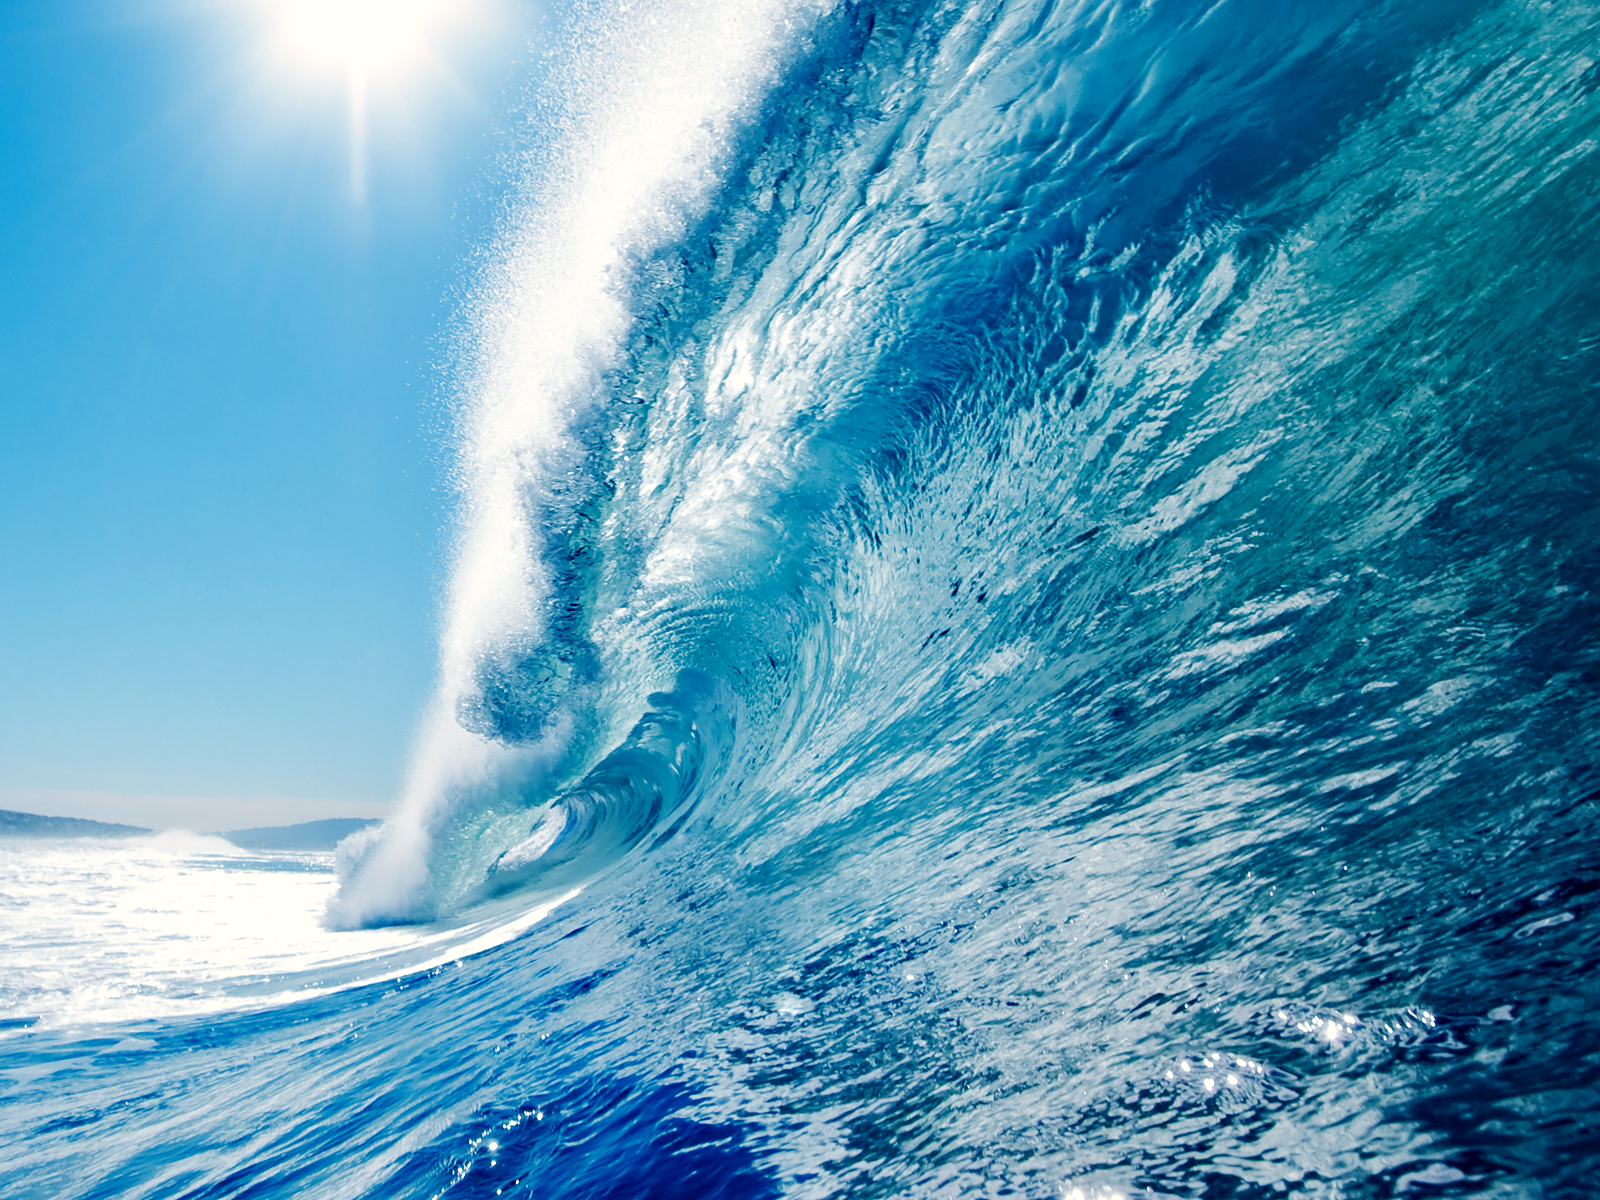 Wallpaper, Wave (39913706)